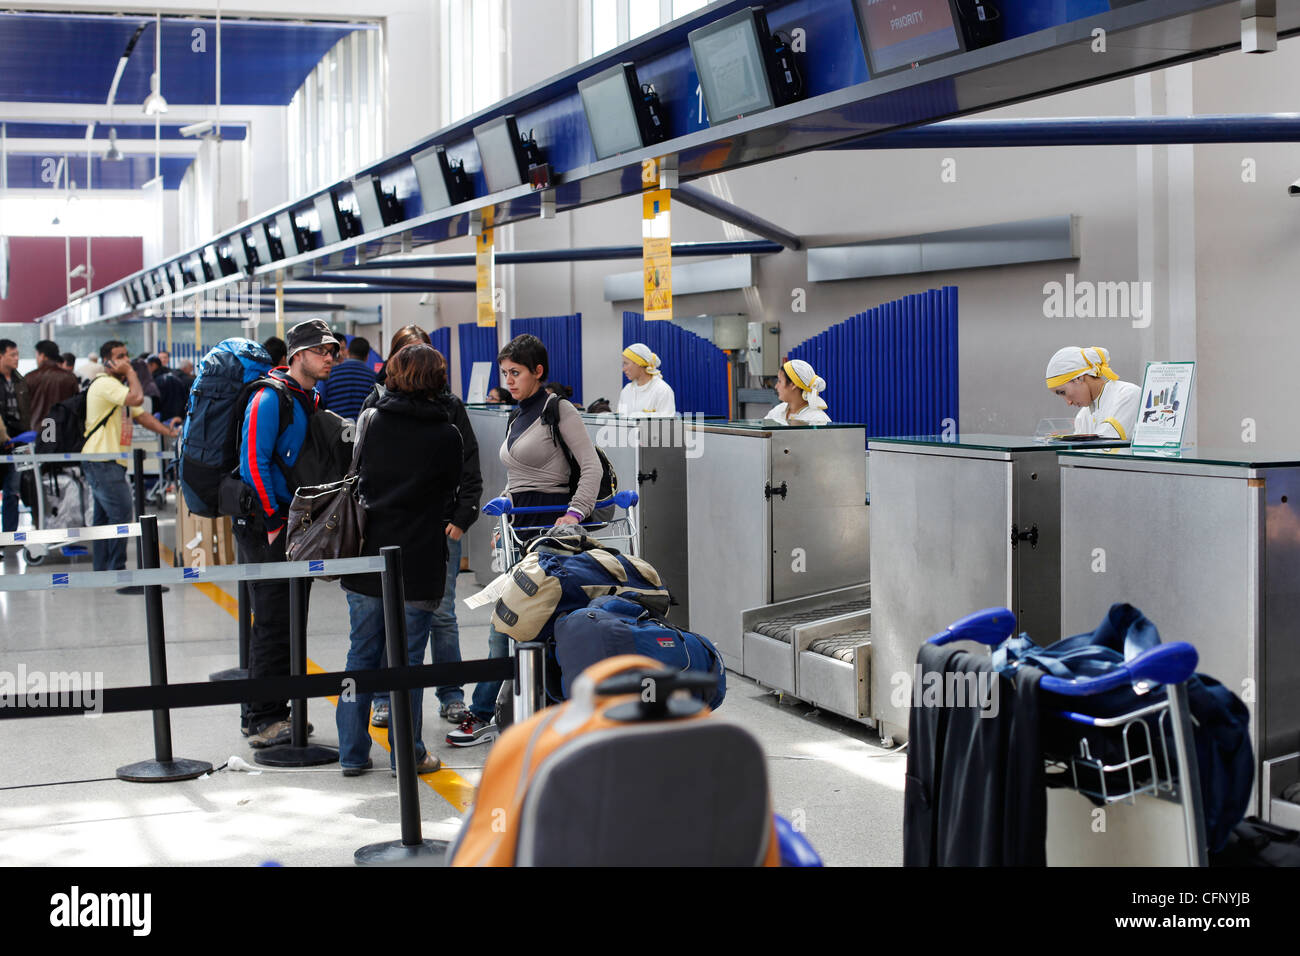 Travellers at checking counters at Airport of Casablanca, Morocco - Stock Image